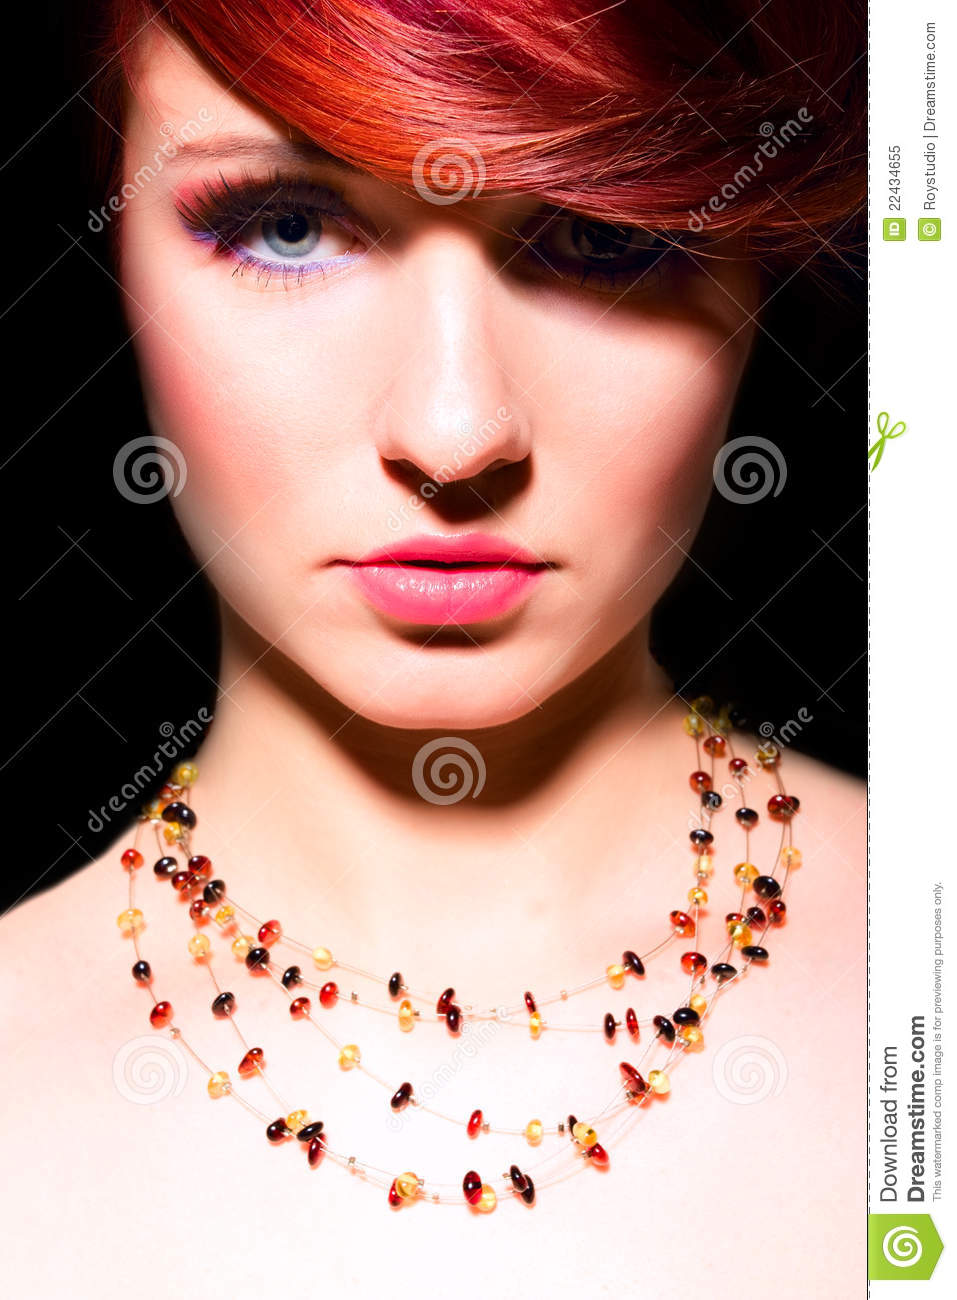 Free Beauty Magazines By Mail: Beauty Red Hair Woman Glamour Portrait Makeup Stock Image